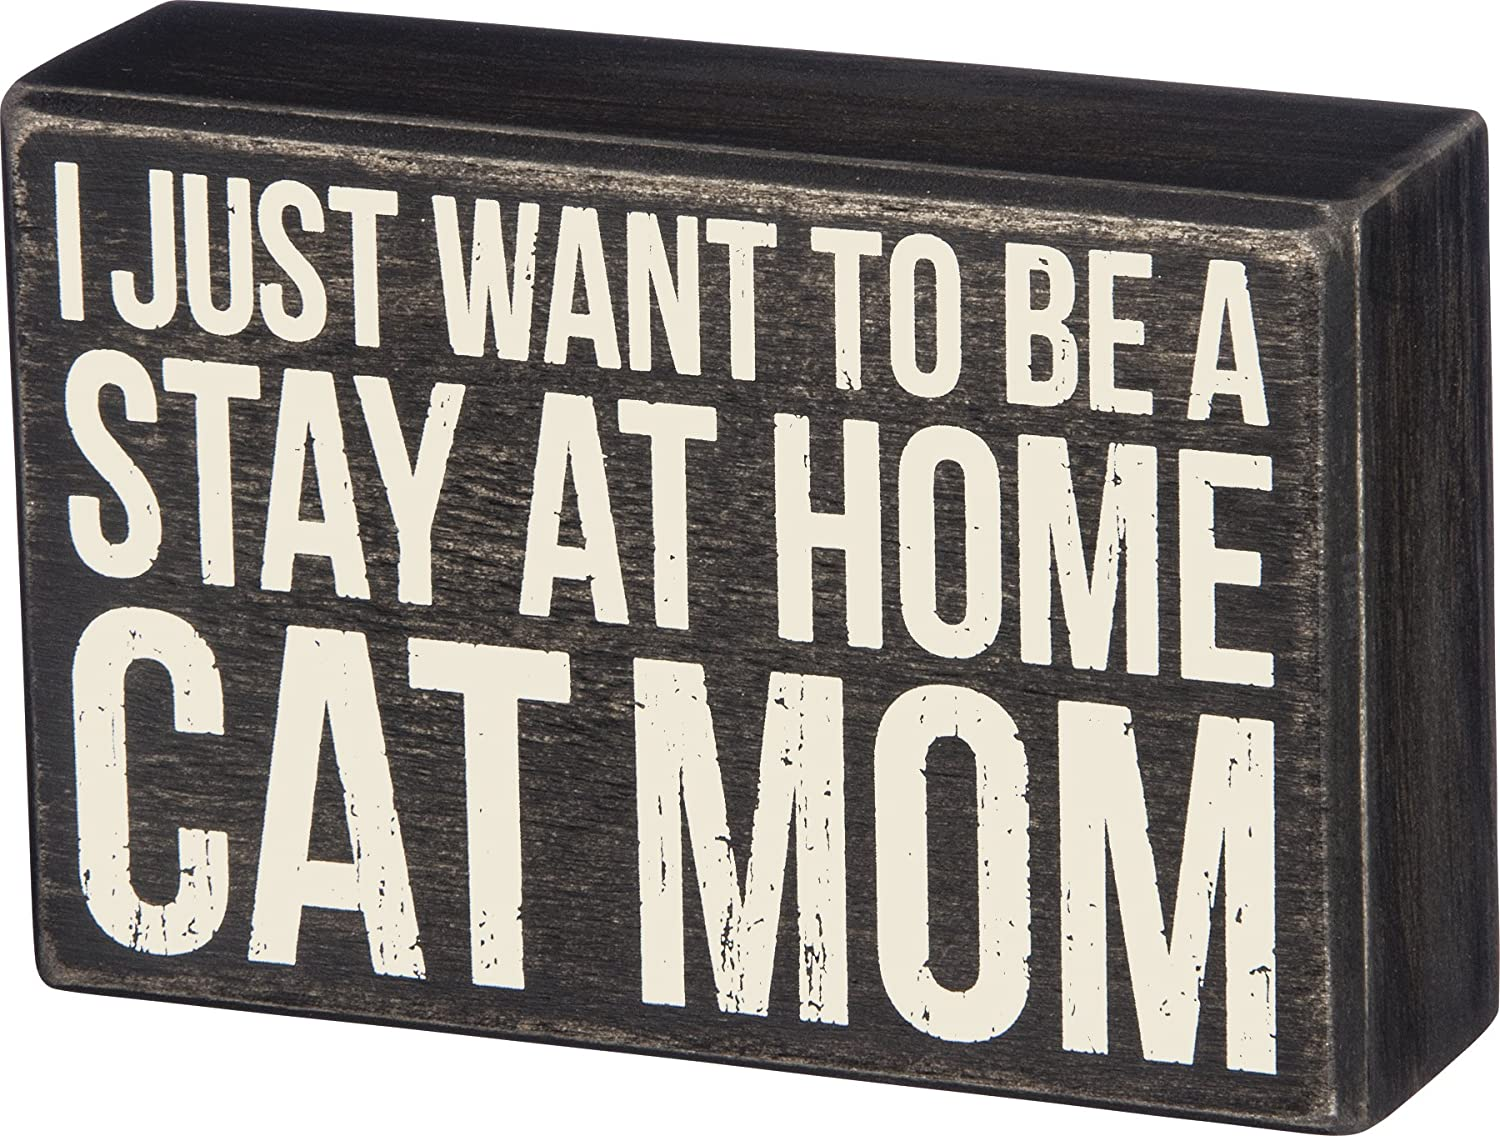 "Primitives by Kathy Box Sign - I Just Want to Be a Stay at Home Cat Mom - Wood, 6"" x 4"""